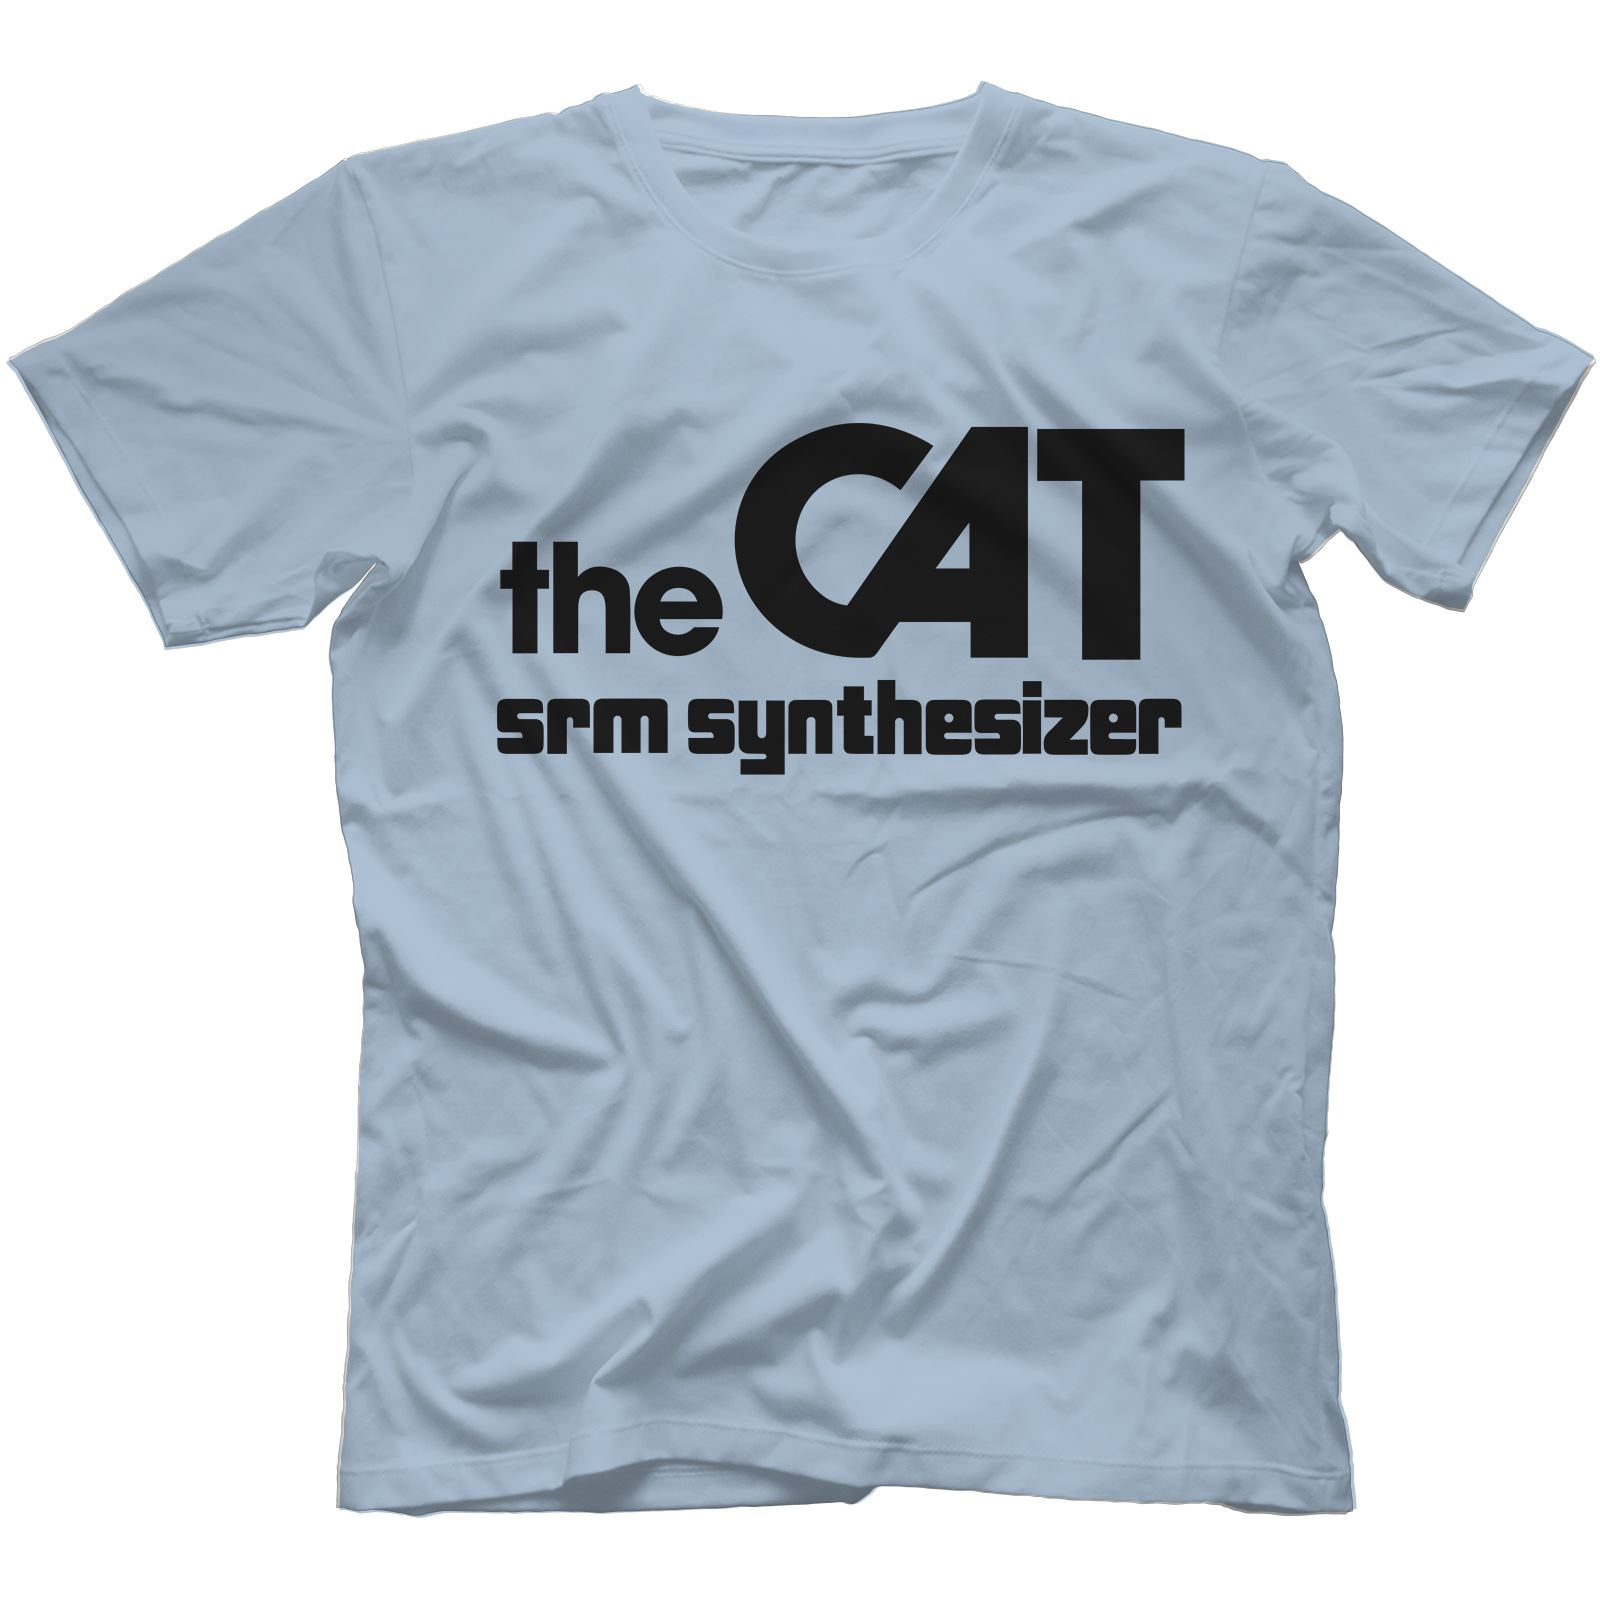 The-Cat-SRM-Synthesiser-T-Shirt-100-Cotton-Retro-Analog-Arp-Odyssey Indexbild 32